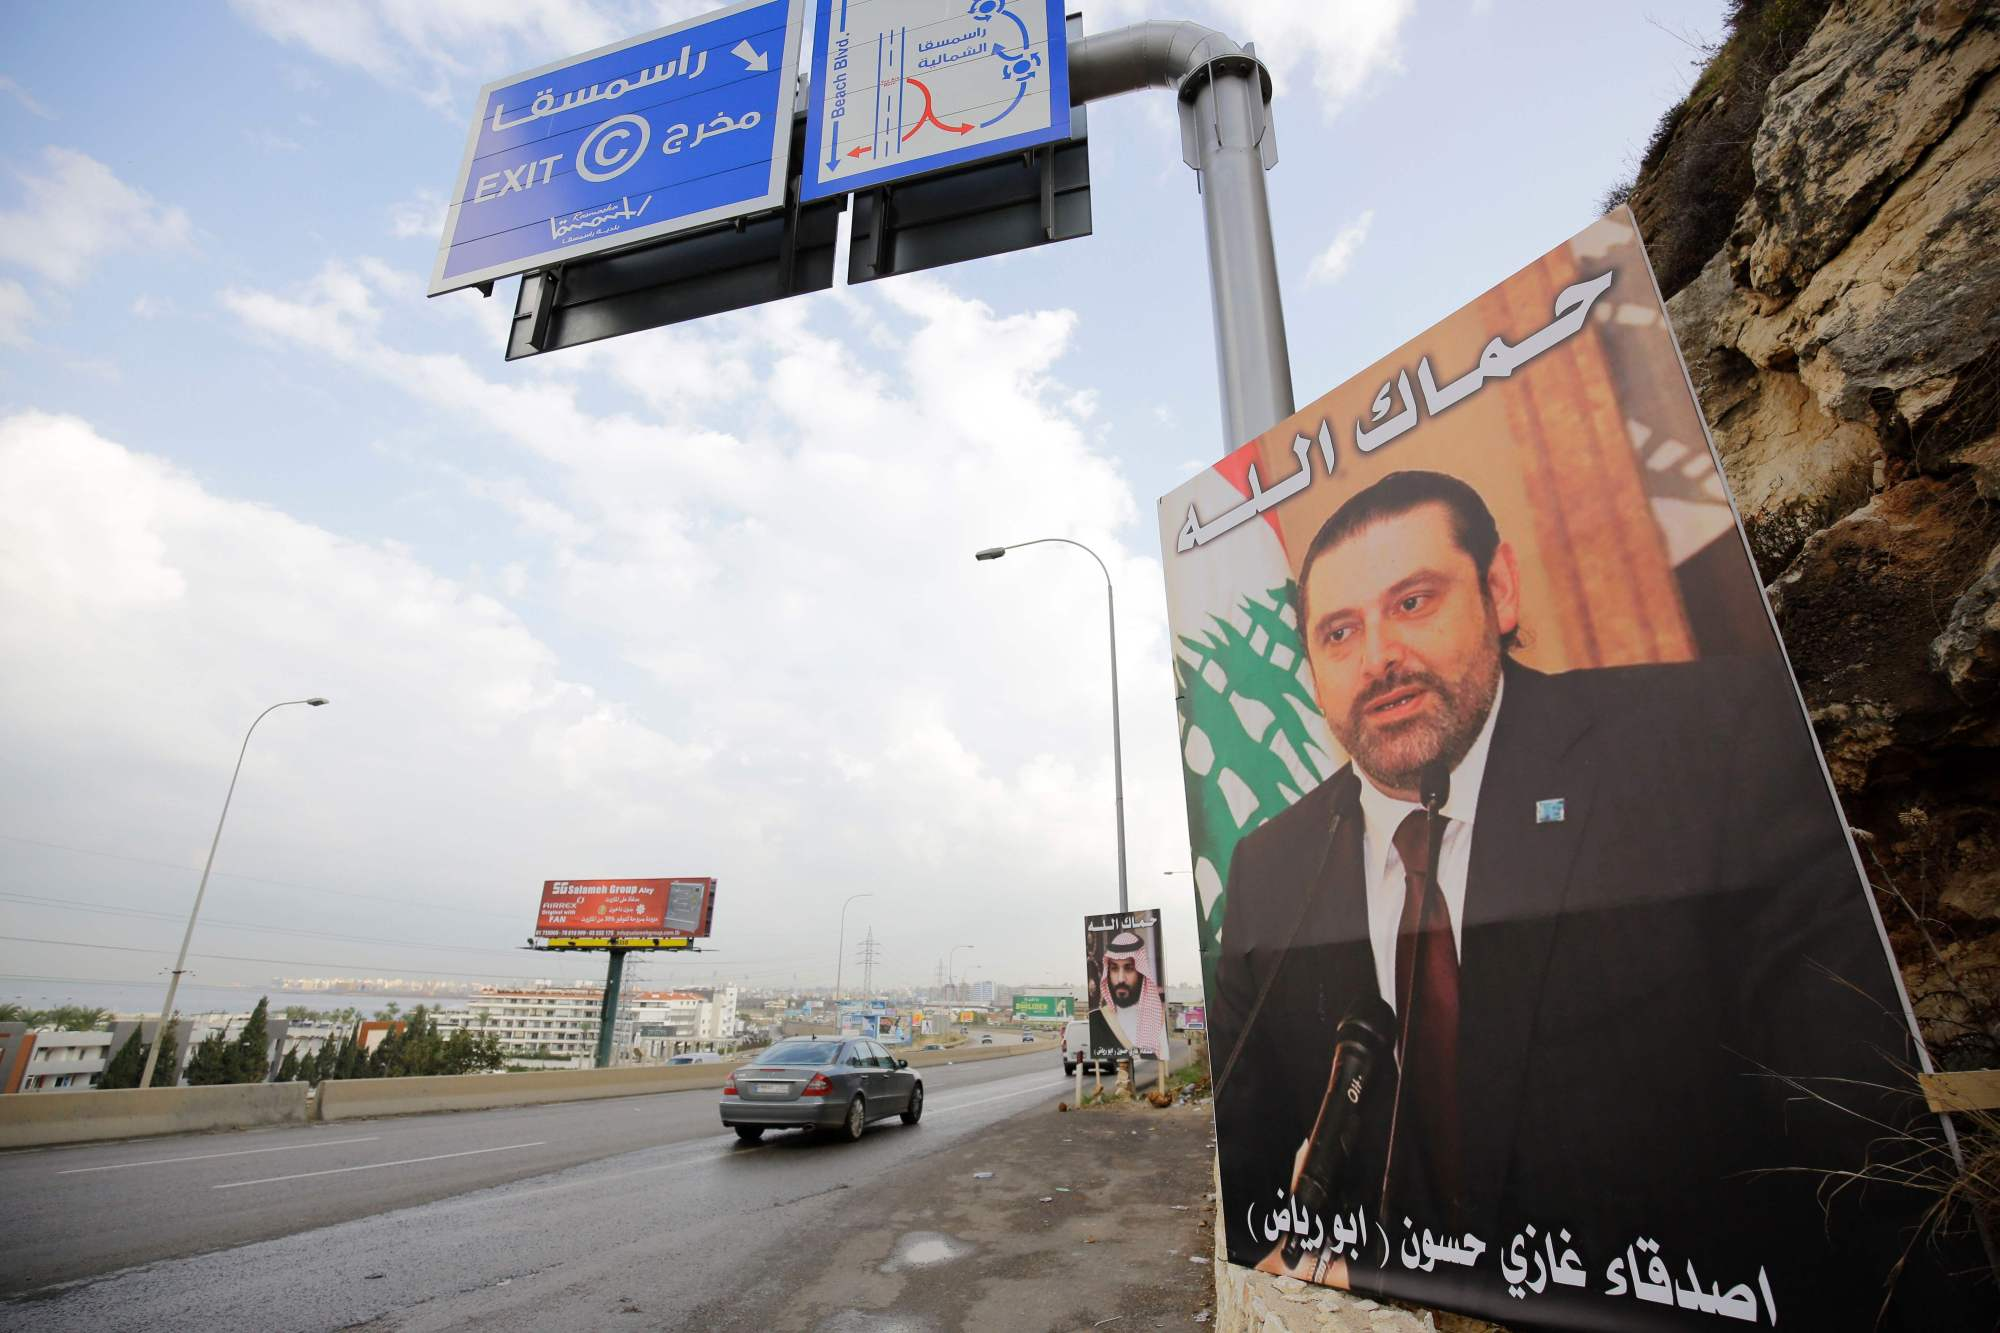 A poster of Lebanese Prime Minister Saad Hariri, who resigned last week in a televised speech, hangs on the side of a road with a phrase reading in Arabic, ' God protect you' in the northern Lebanese port city of Tripoli on Thursday. Hariri announced his resignation last weekend from Riyadh in a televised speech that sparked concerns of a political crisis in Lebanon as tensions between Saudi Arabia and Iran escalated. | AFP-JIJI